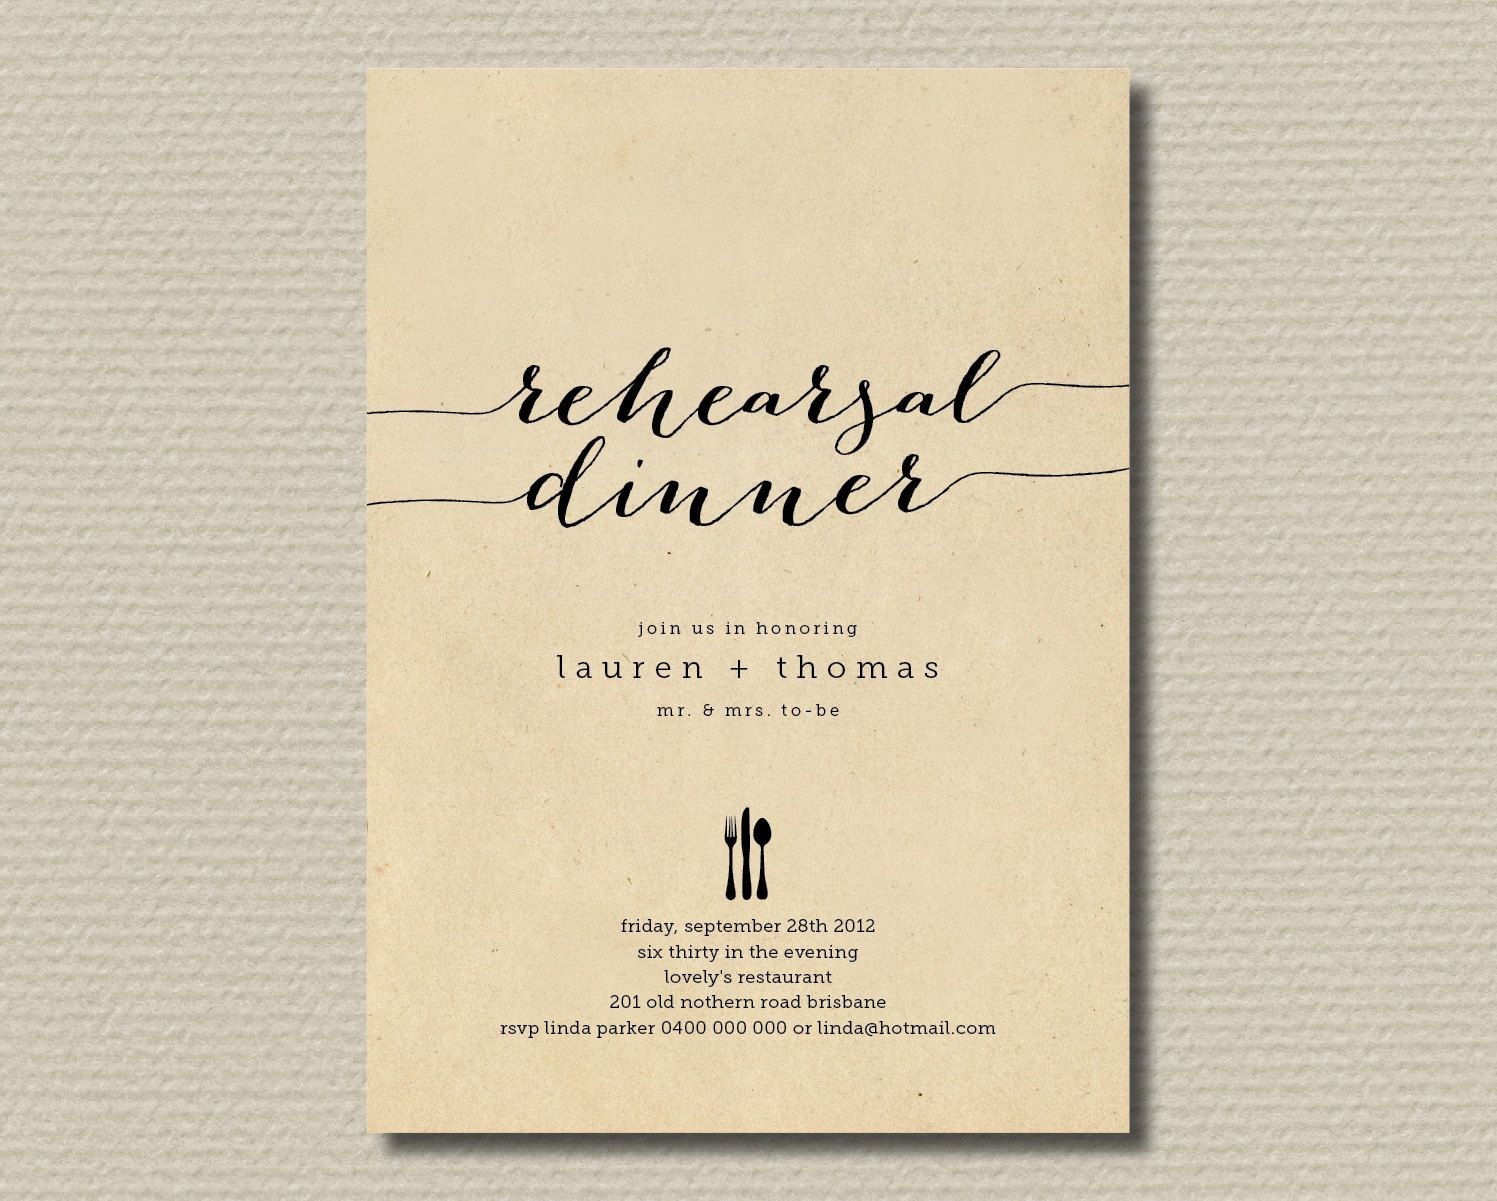 dinner invitation templates free - Google Search | primary ...